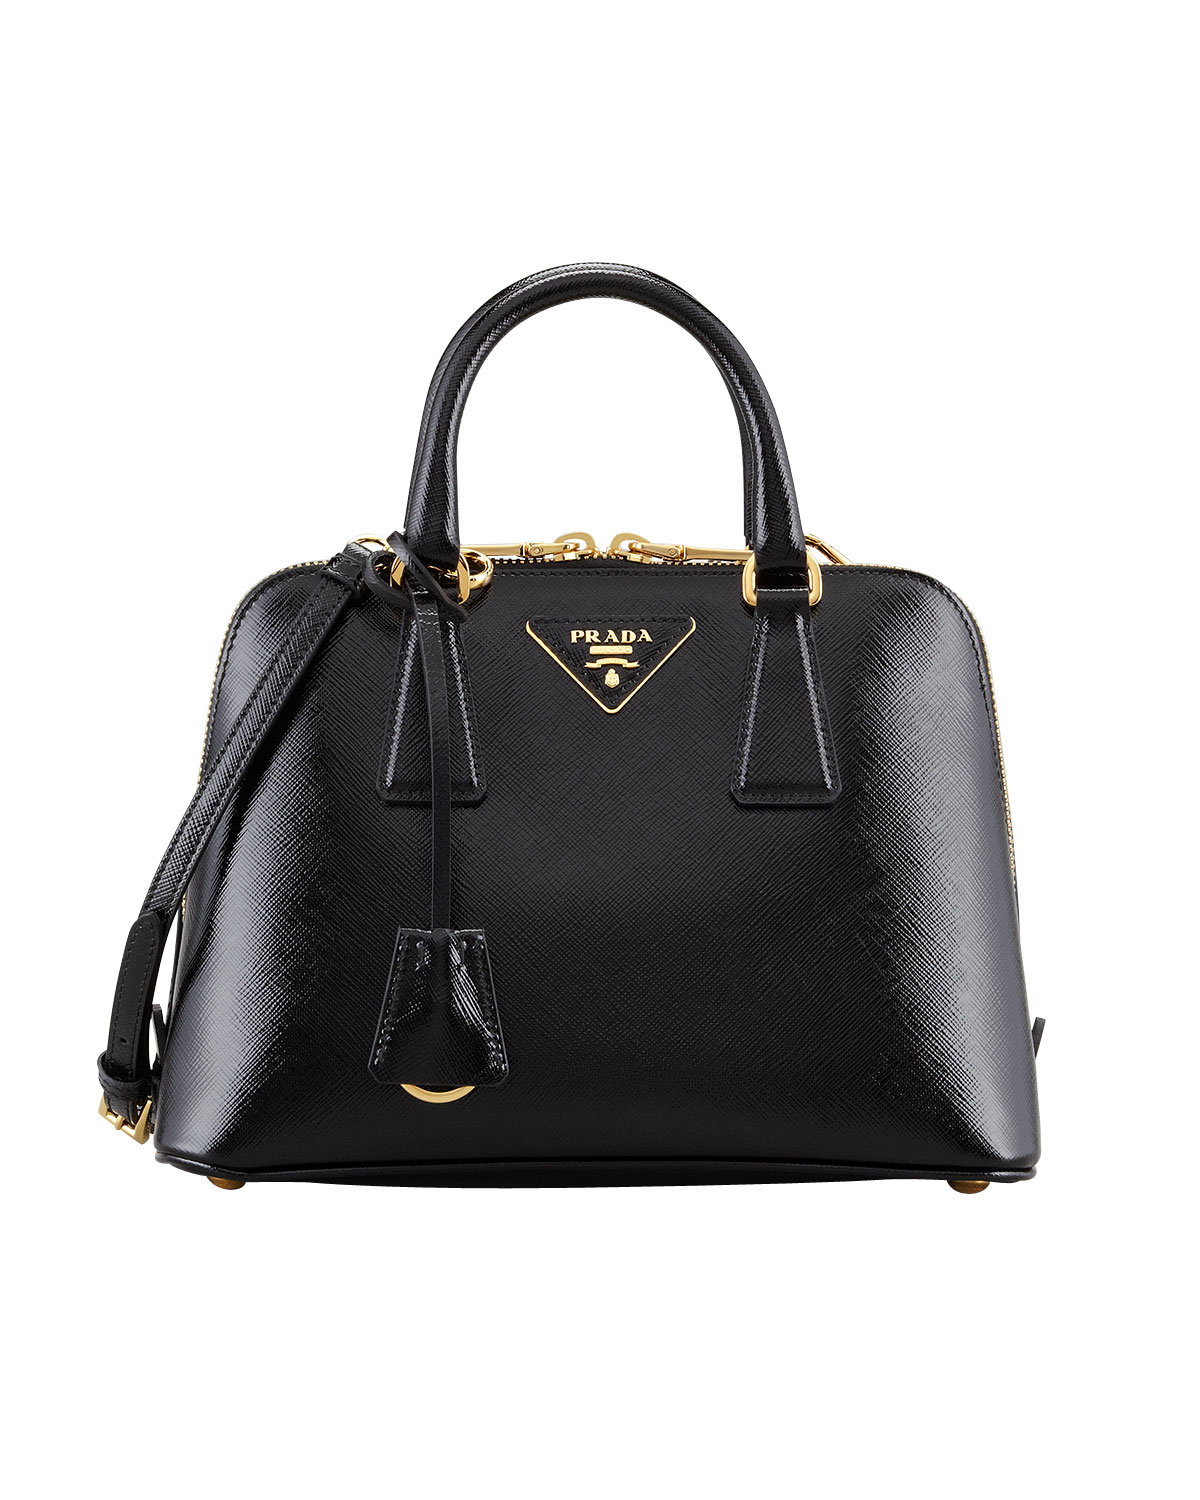 prada saffiano vernice promenade crossbody bag in black lyst